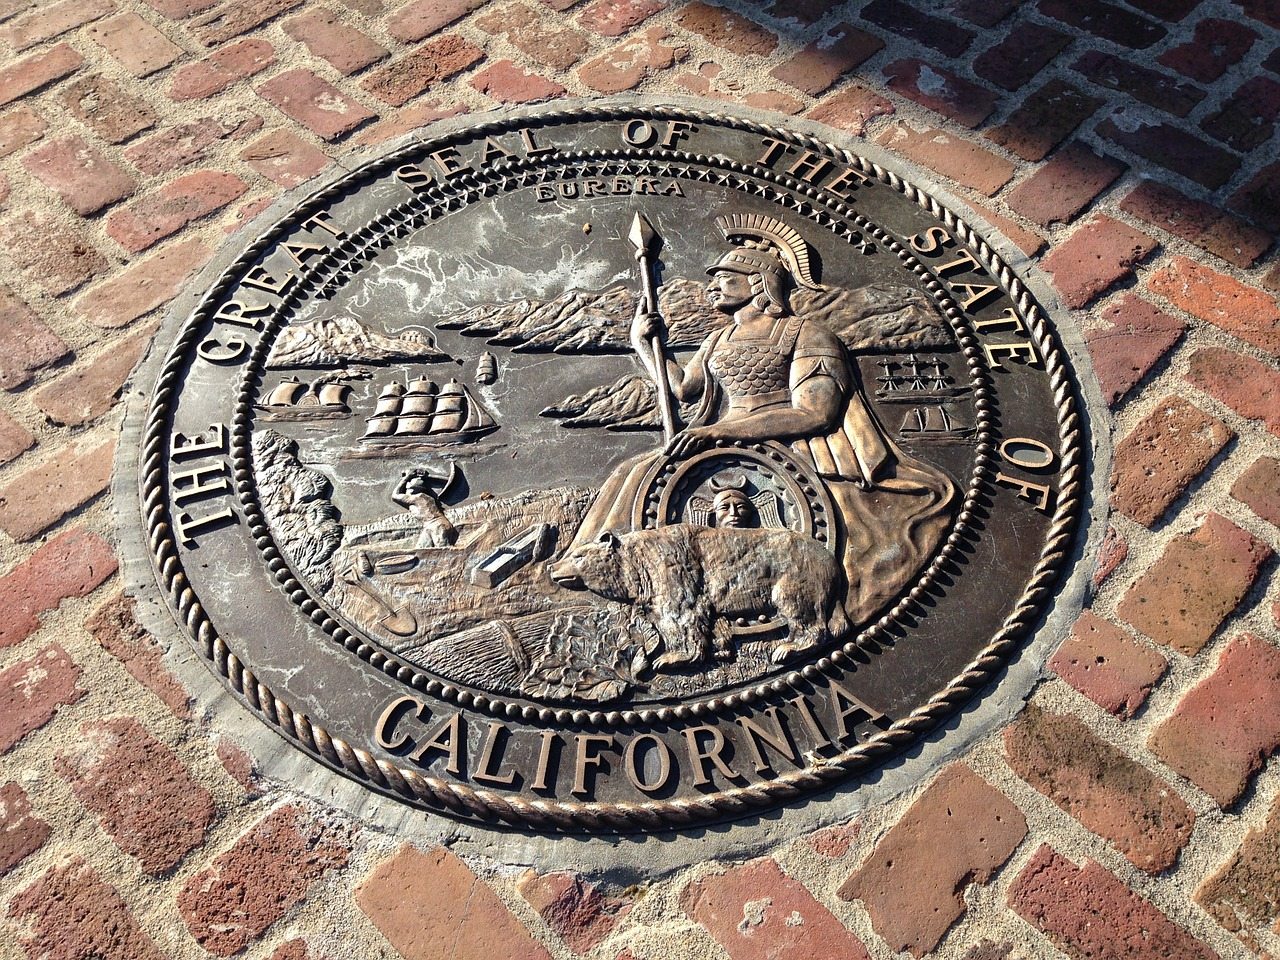 California allows more exemptions from labor law limiting independent contractors